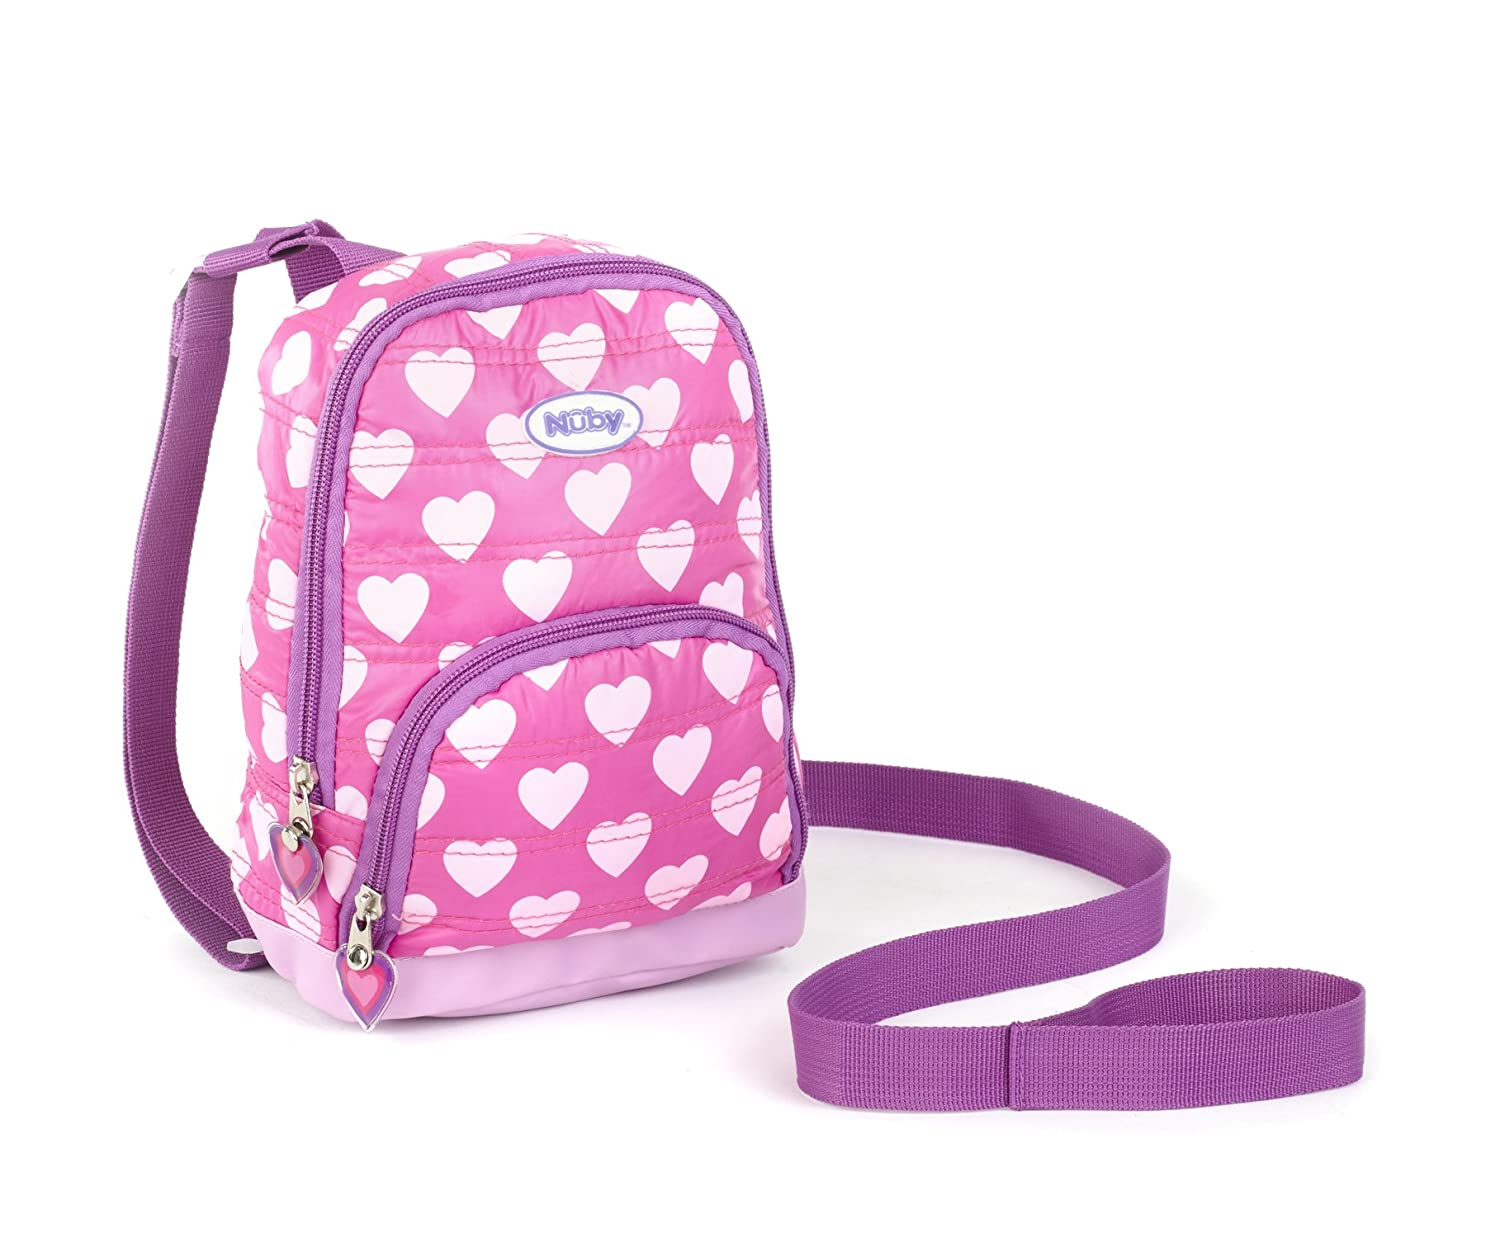 Nuby Quilted Baby Backpack with Safety Harness,Pink Hearts 120019